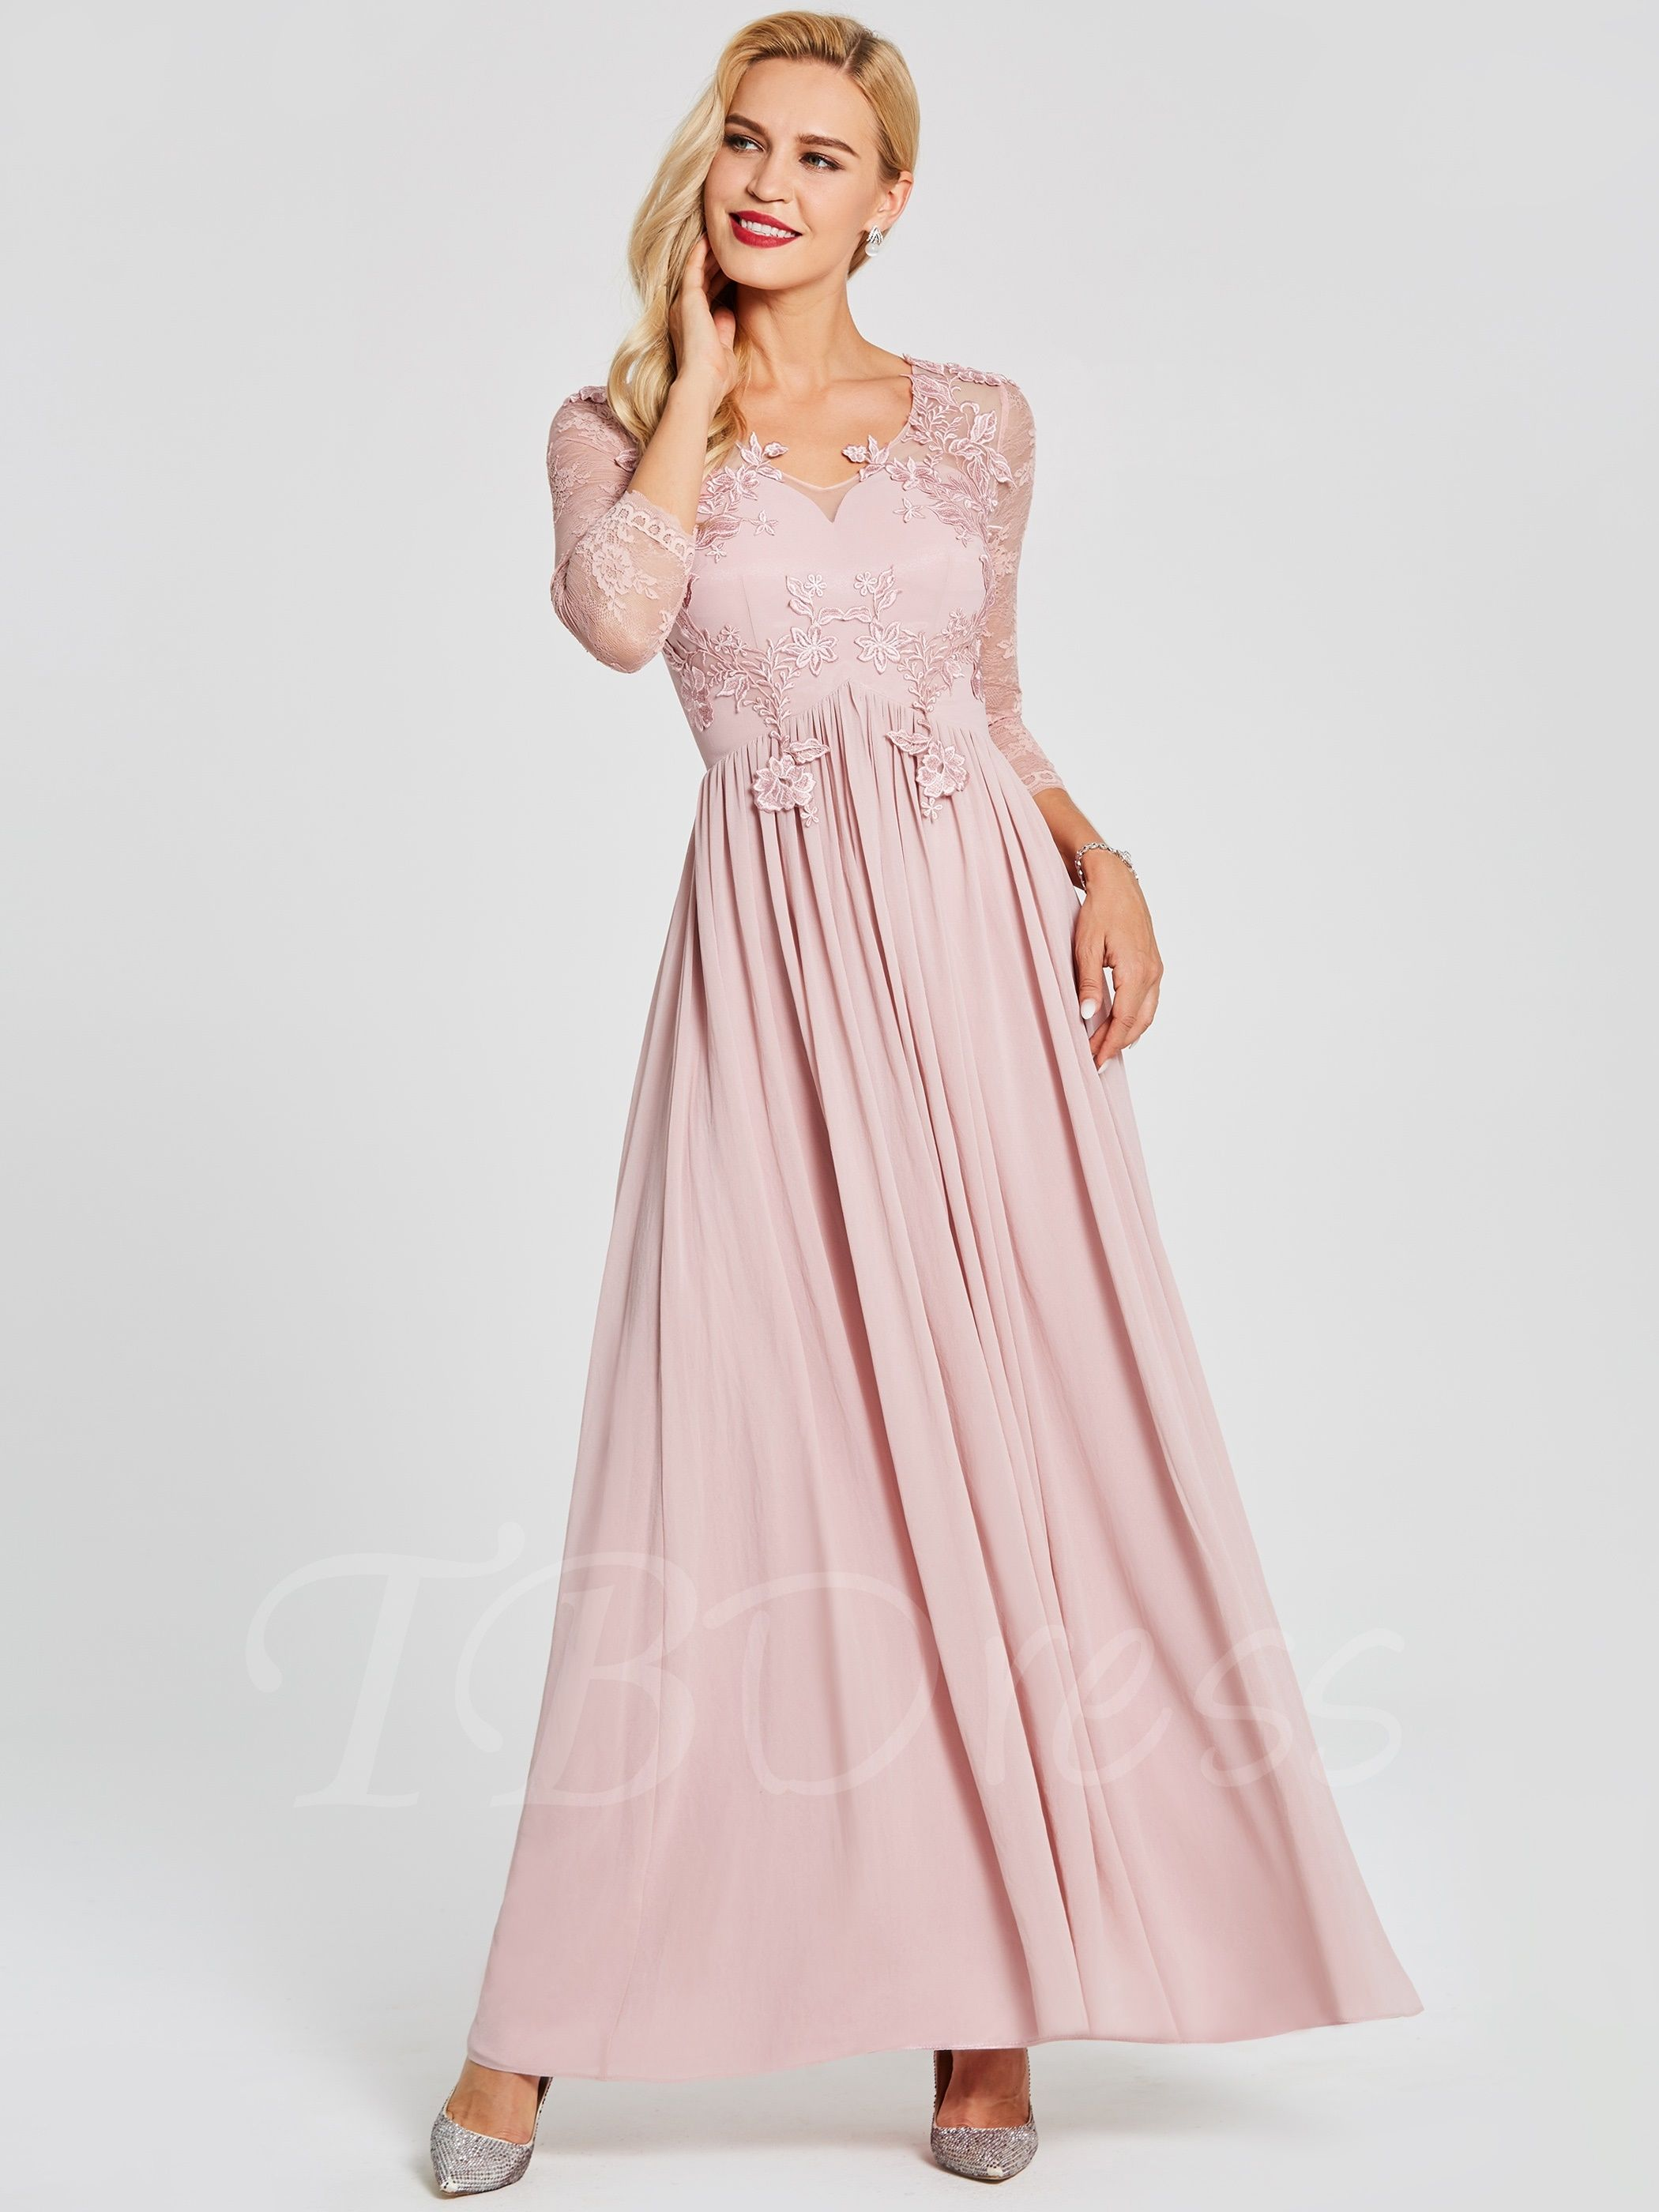 V neck long sleeves lace appliques prom dress rustic colorado